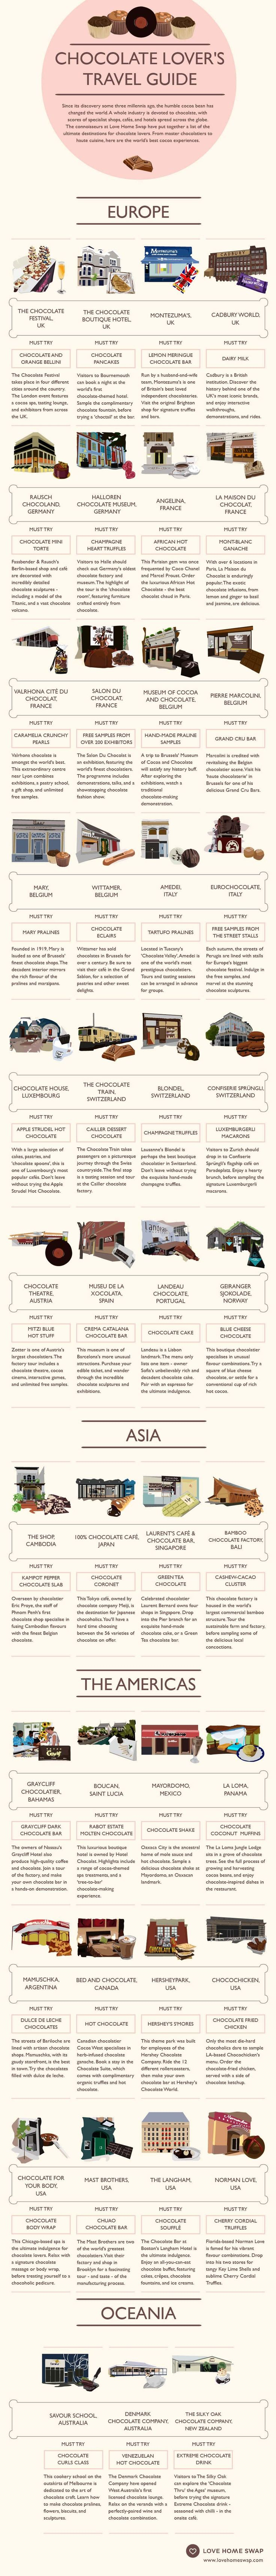 Infographic Chocolate Lover's Travel Guide | Infographics Creator